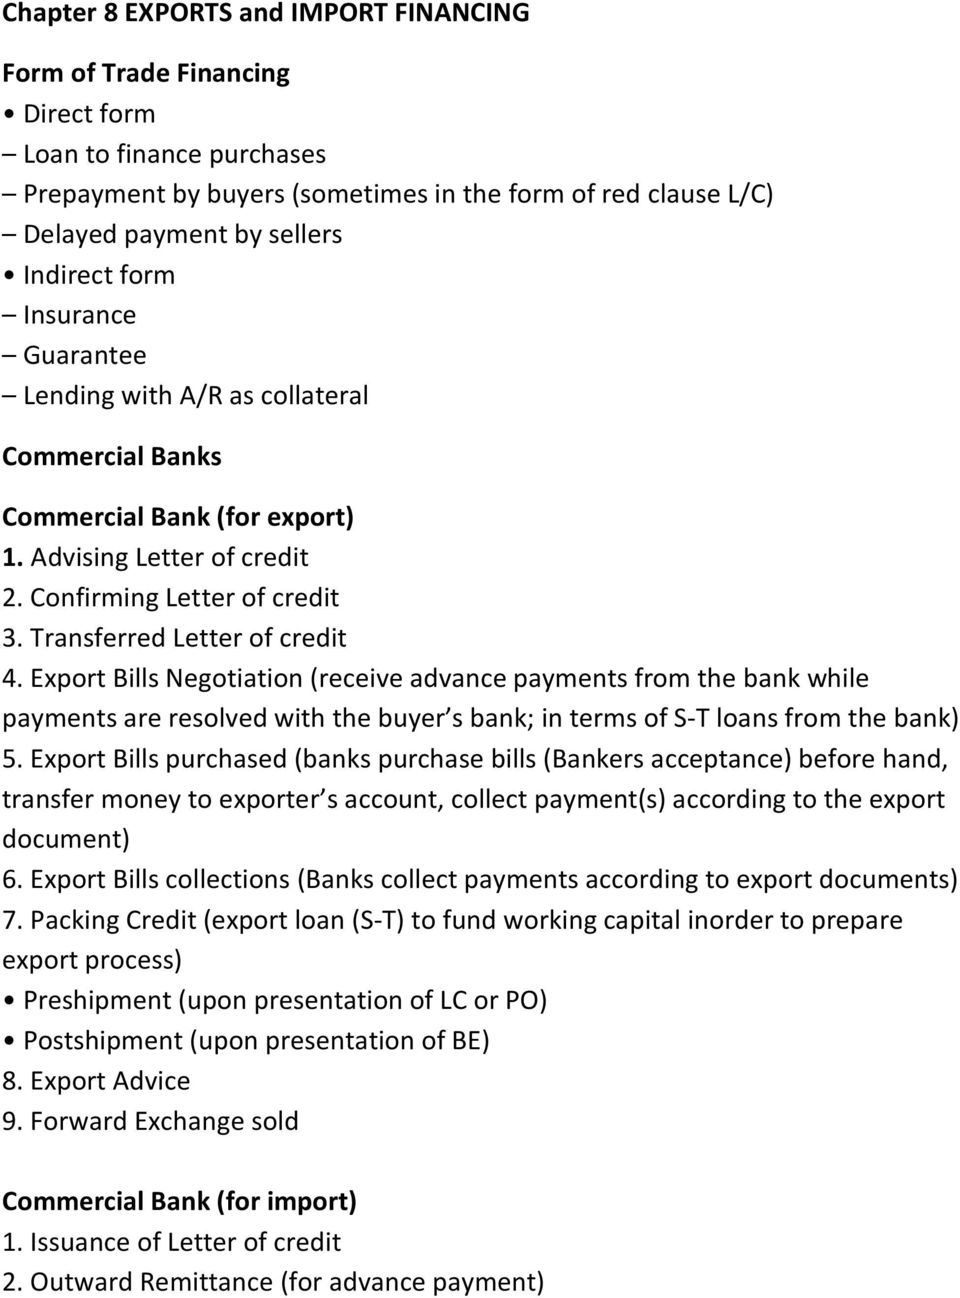 Export Bills Negotiation (receive advance payments from the bank while payments are resolved with the buyer s bank; in terms of S T loans from the bank) 5.